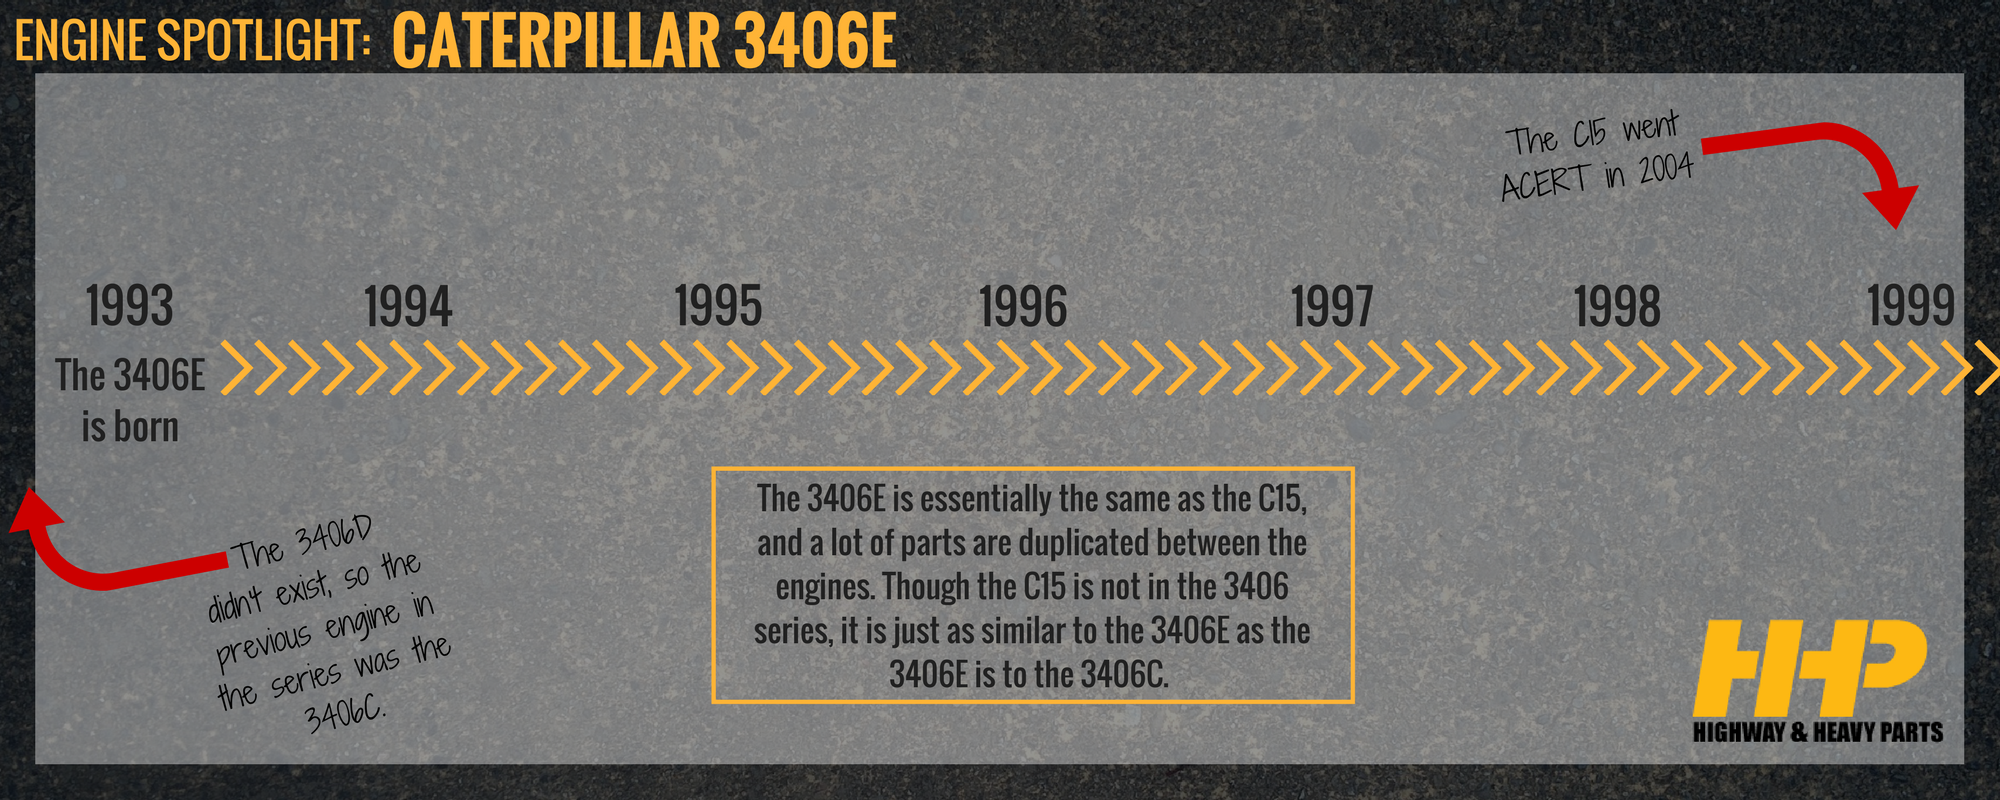 3406E Engine Timeline | Highway & Heavy Parts